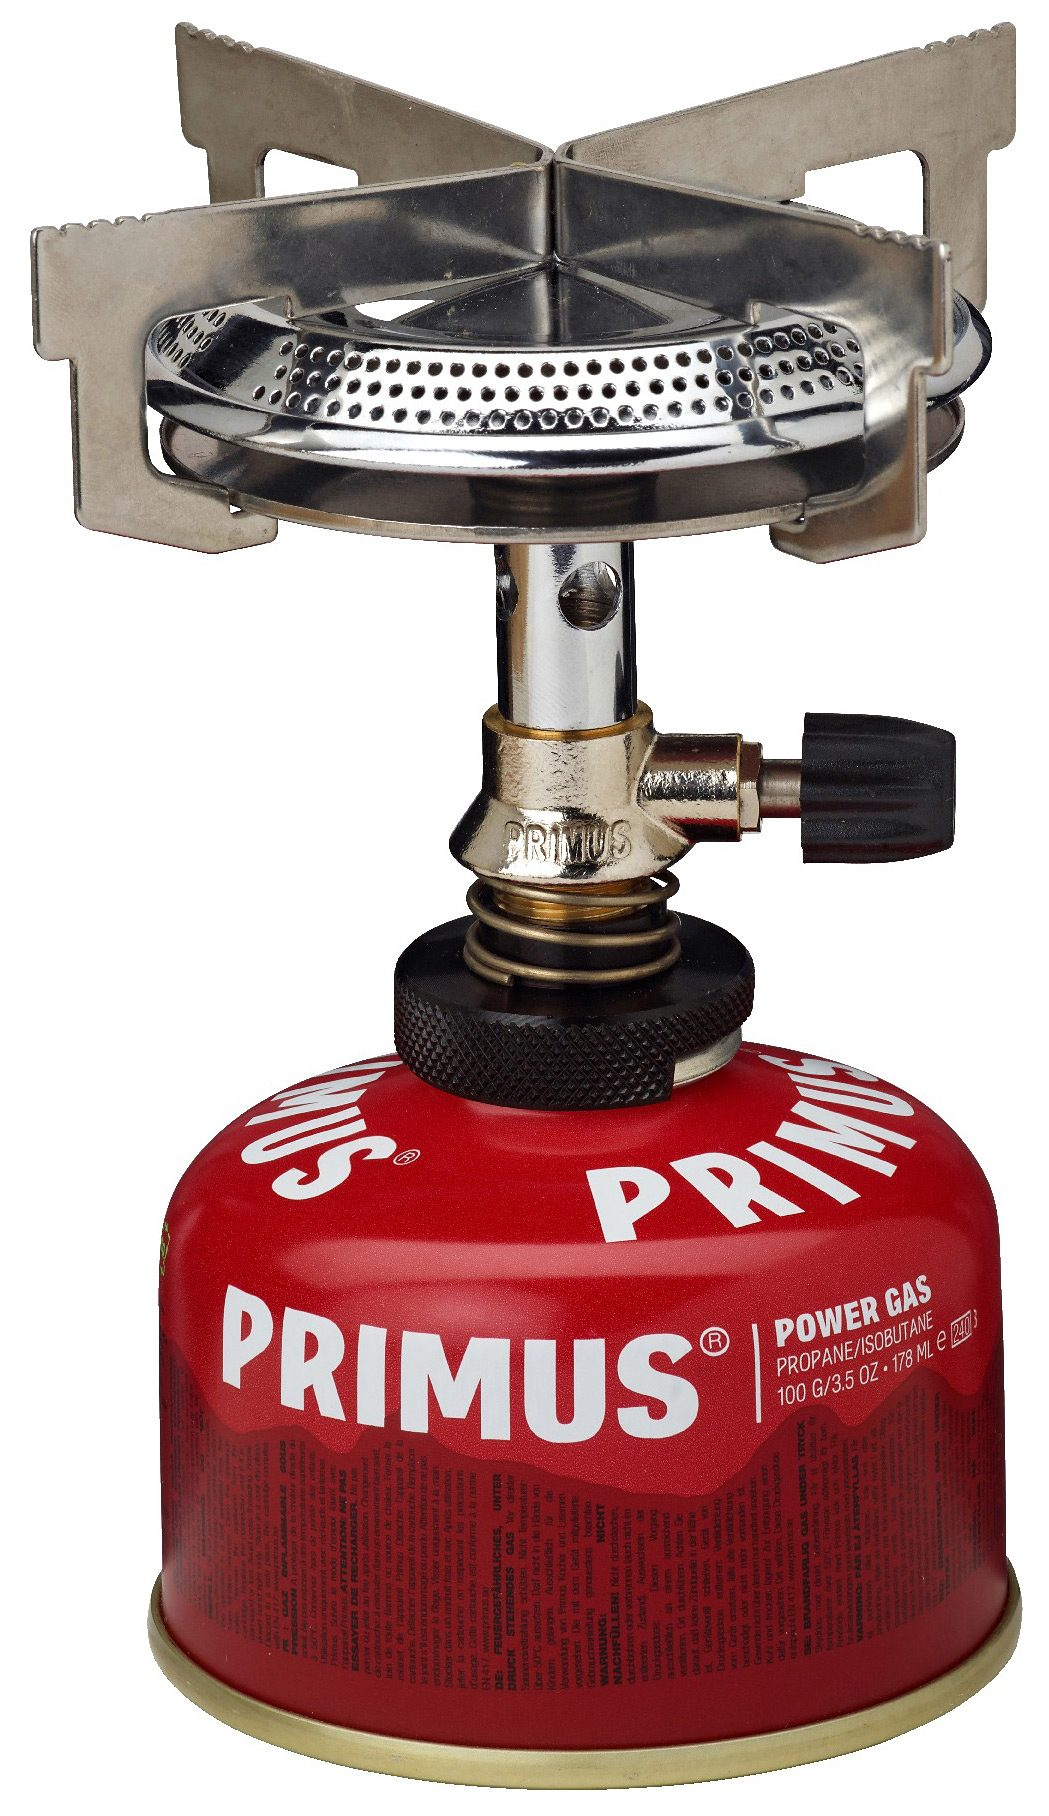 Primus Camping-Kocher »Mimer Duo Stove«